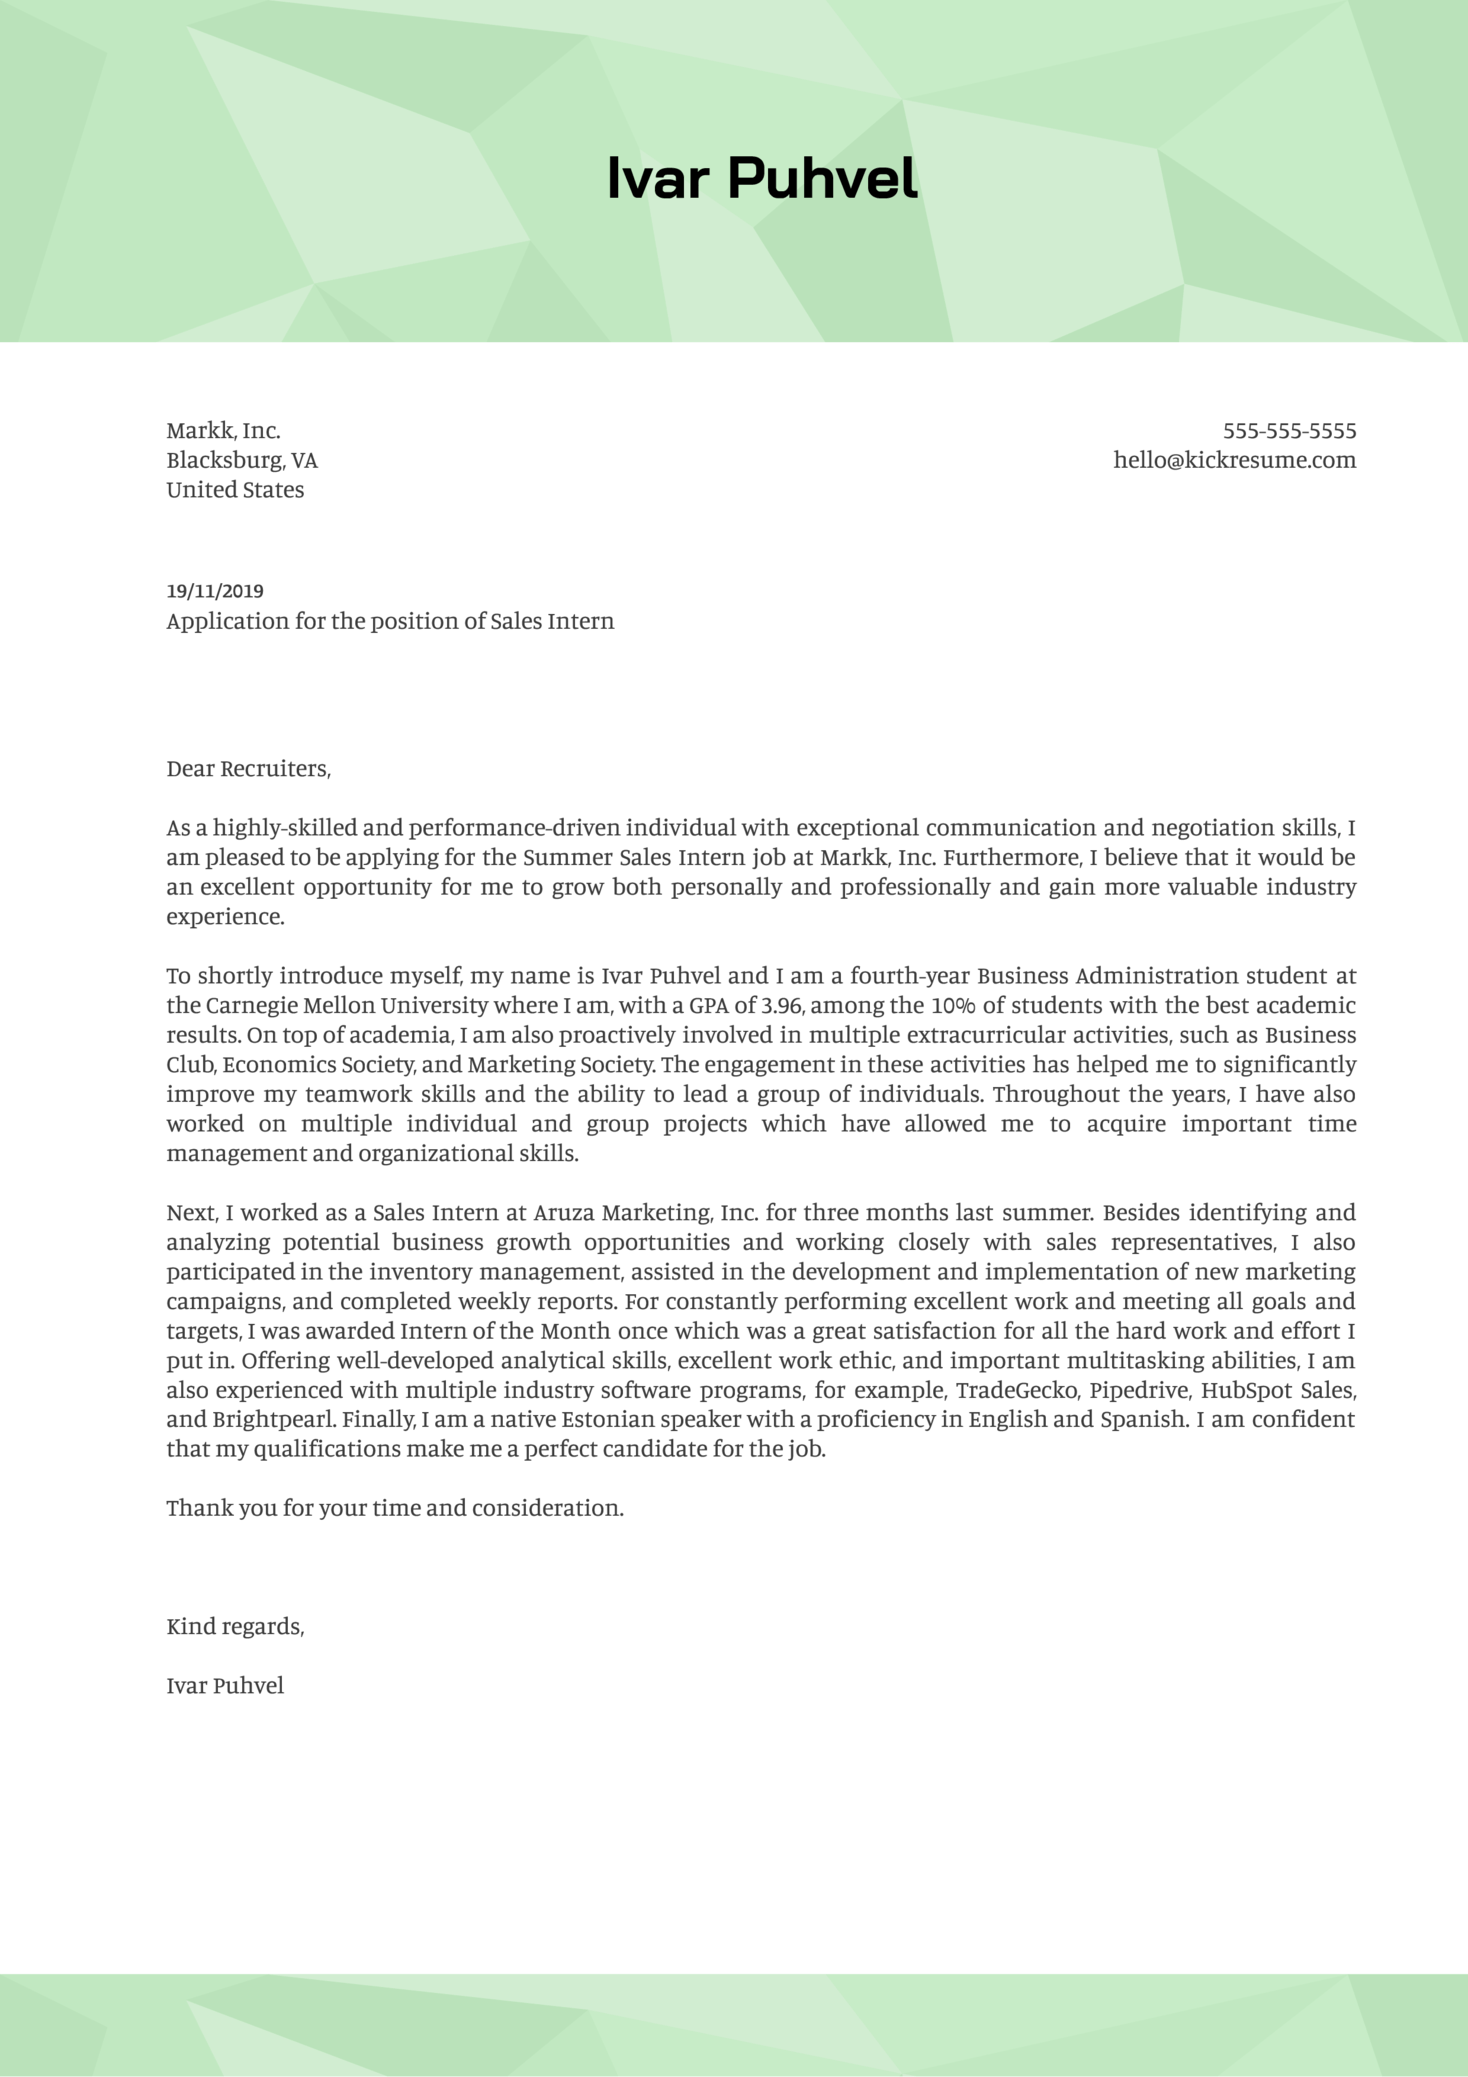 Internship Thank You Letter Examples from s3-eu-west-1.amazonaws.com